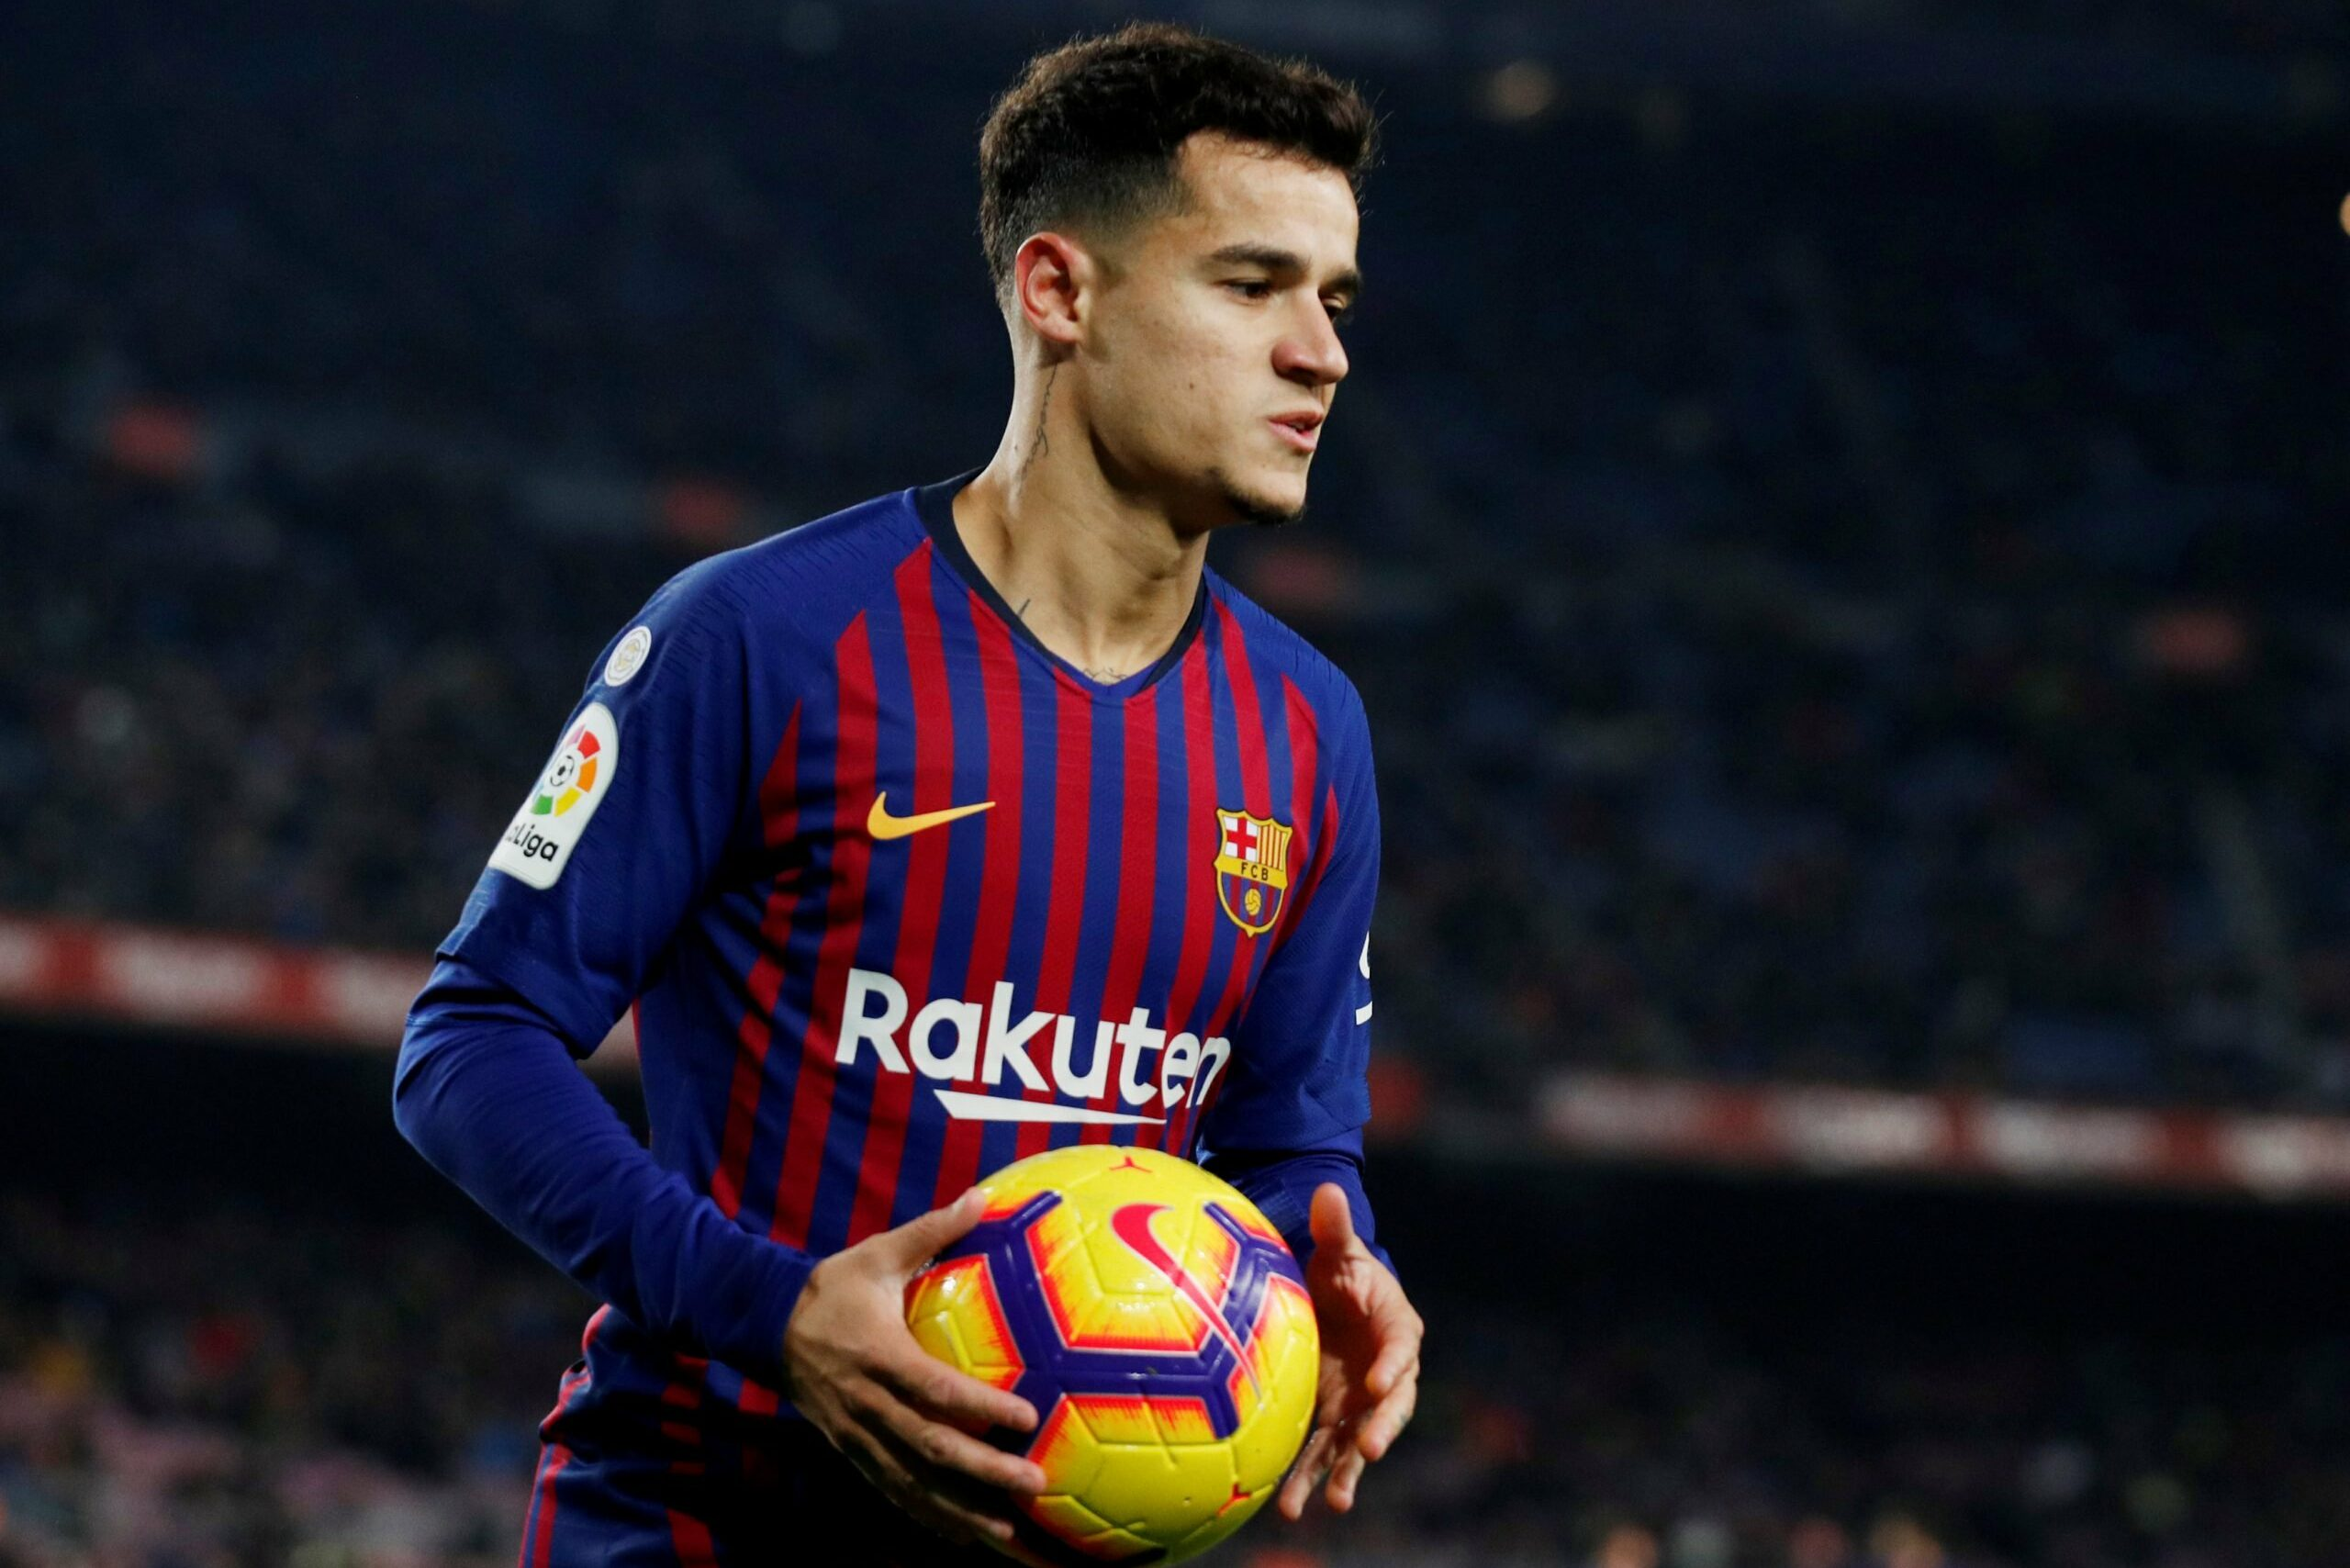 Barcelona to be without Philippe Coutinho for three or four months due to injury